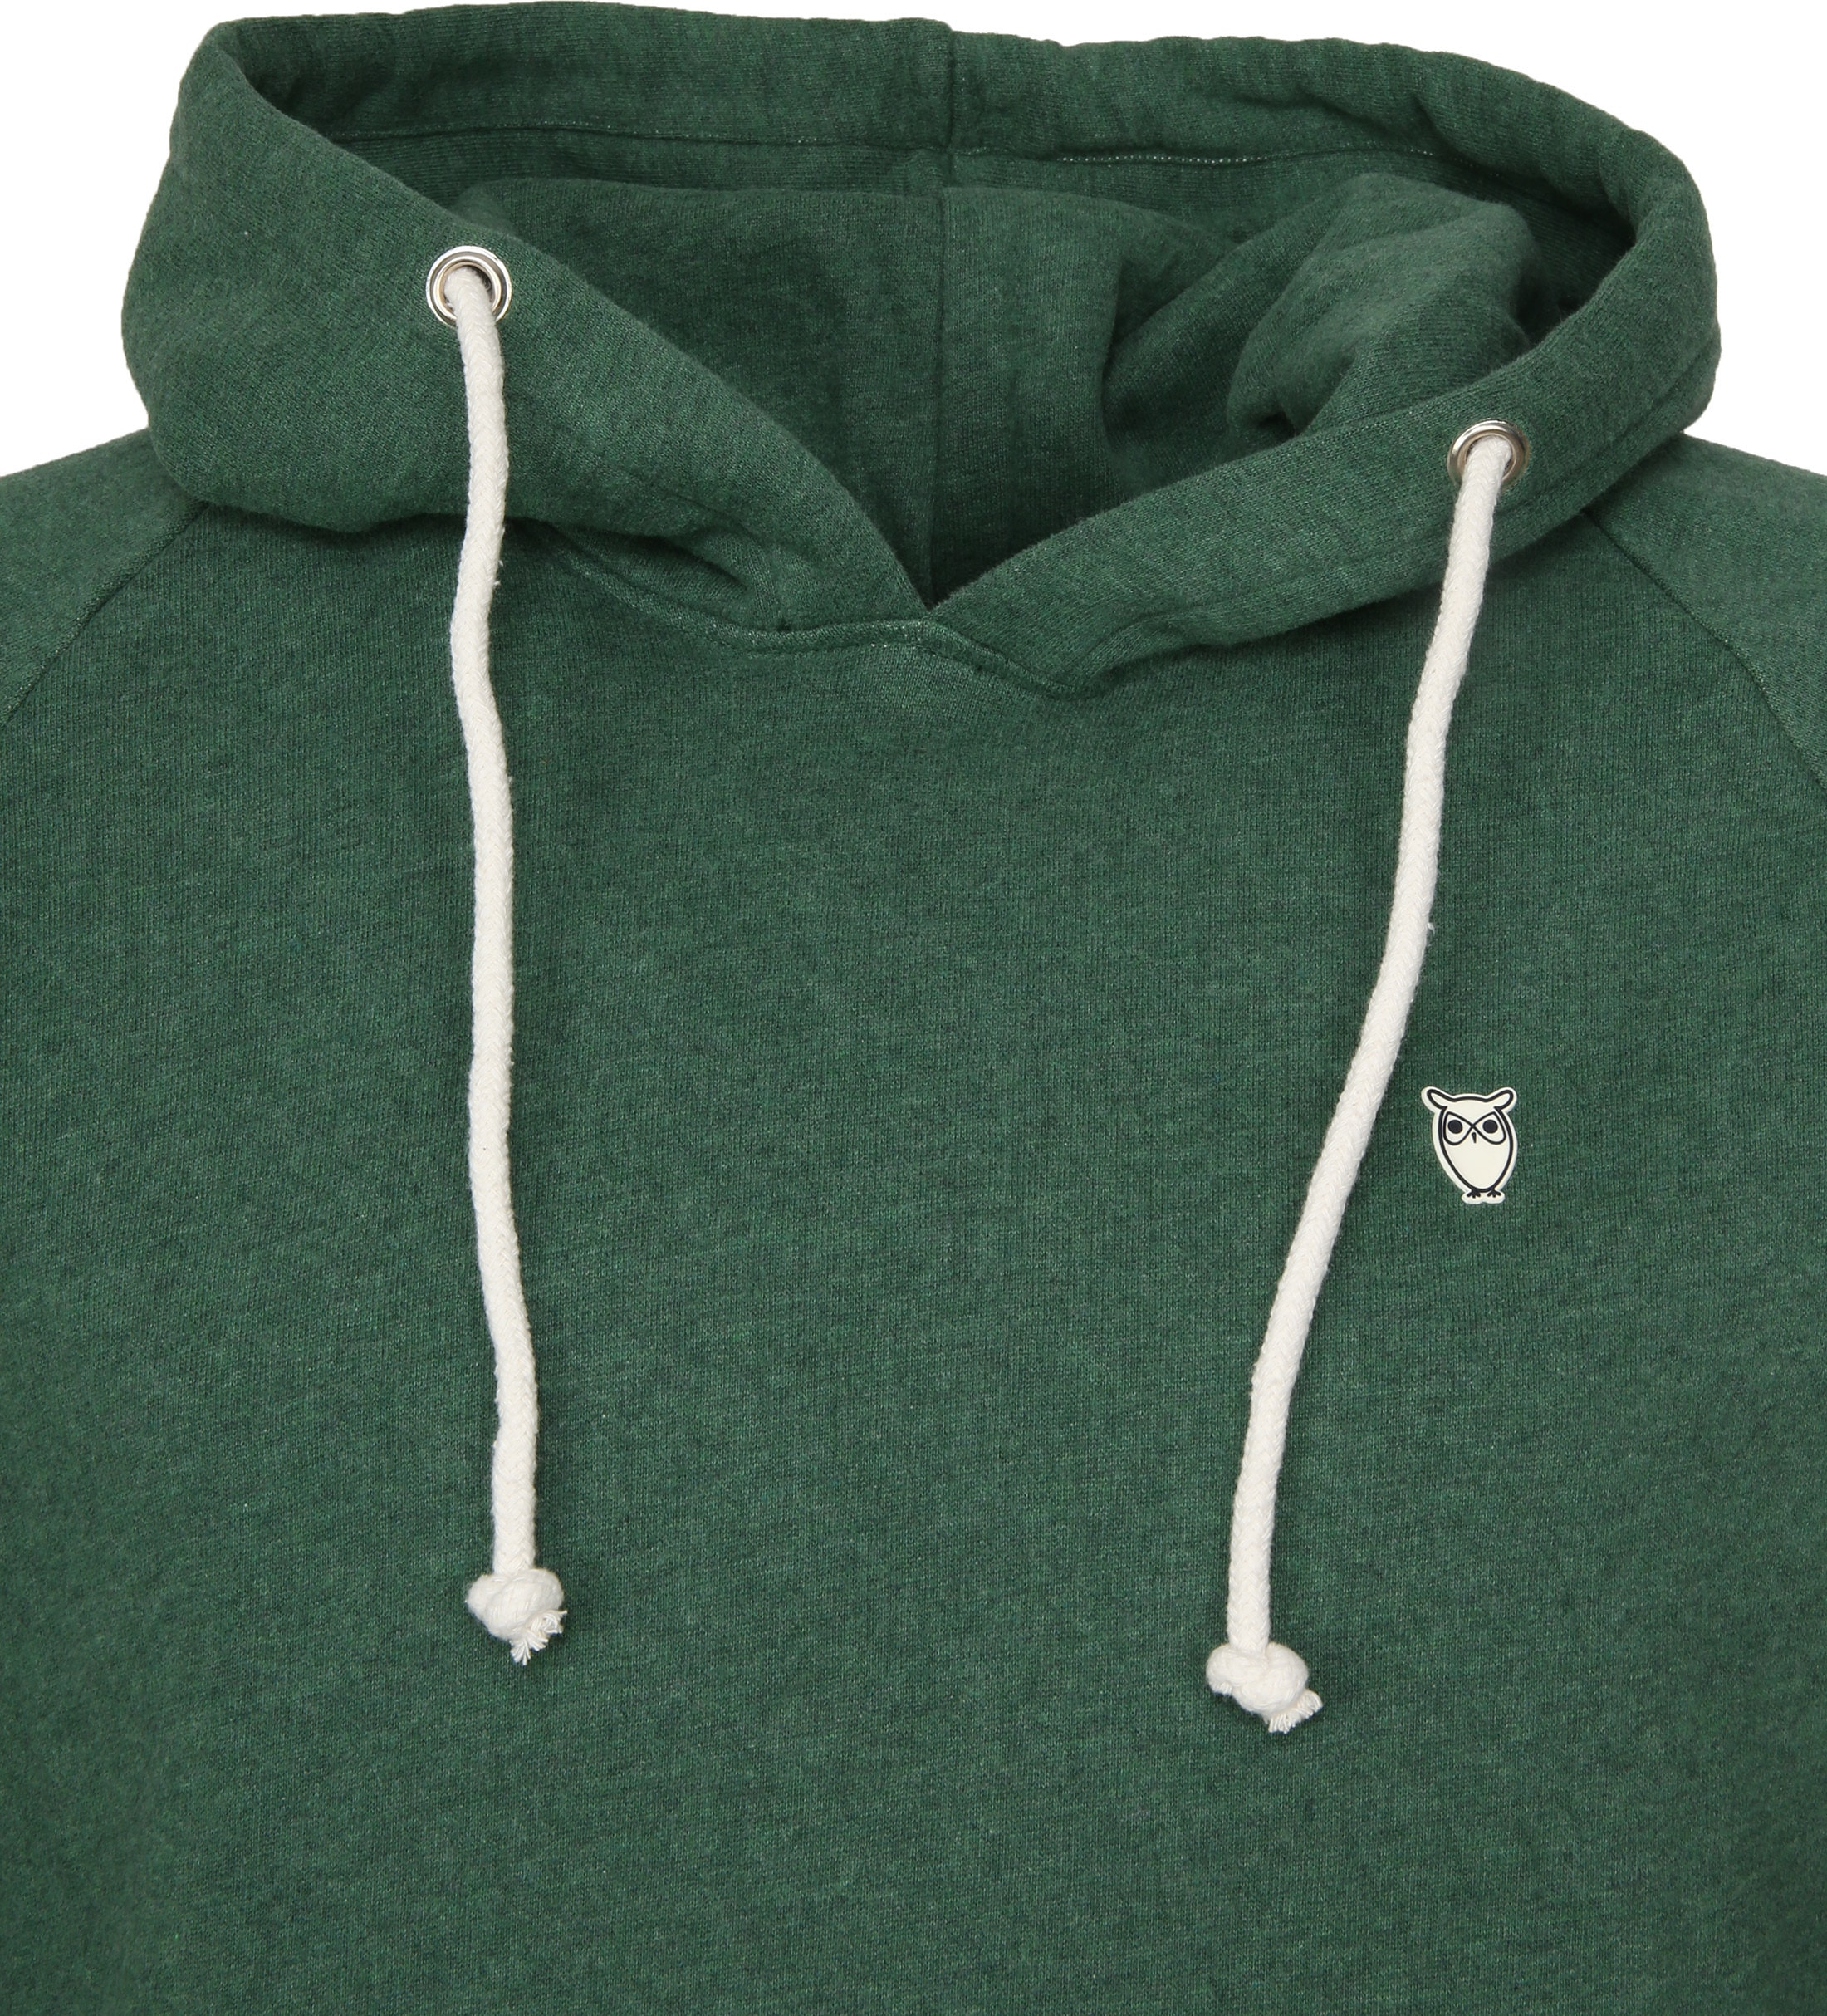 KnowledgeCotton Apparel Hoodie Green foto 1